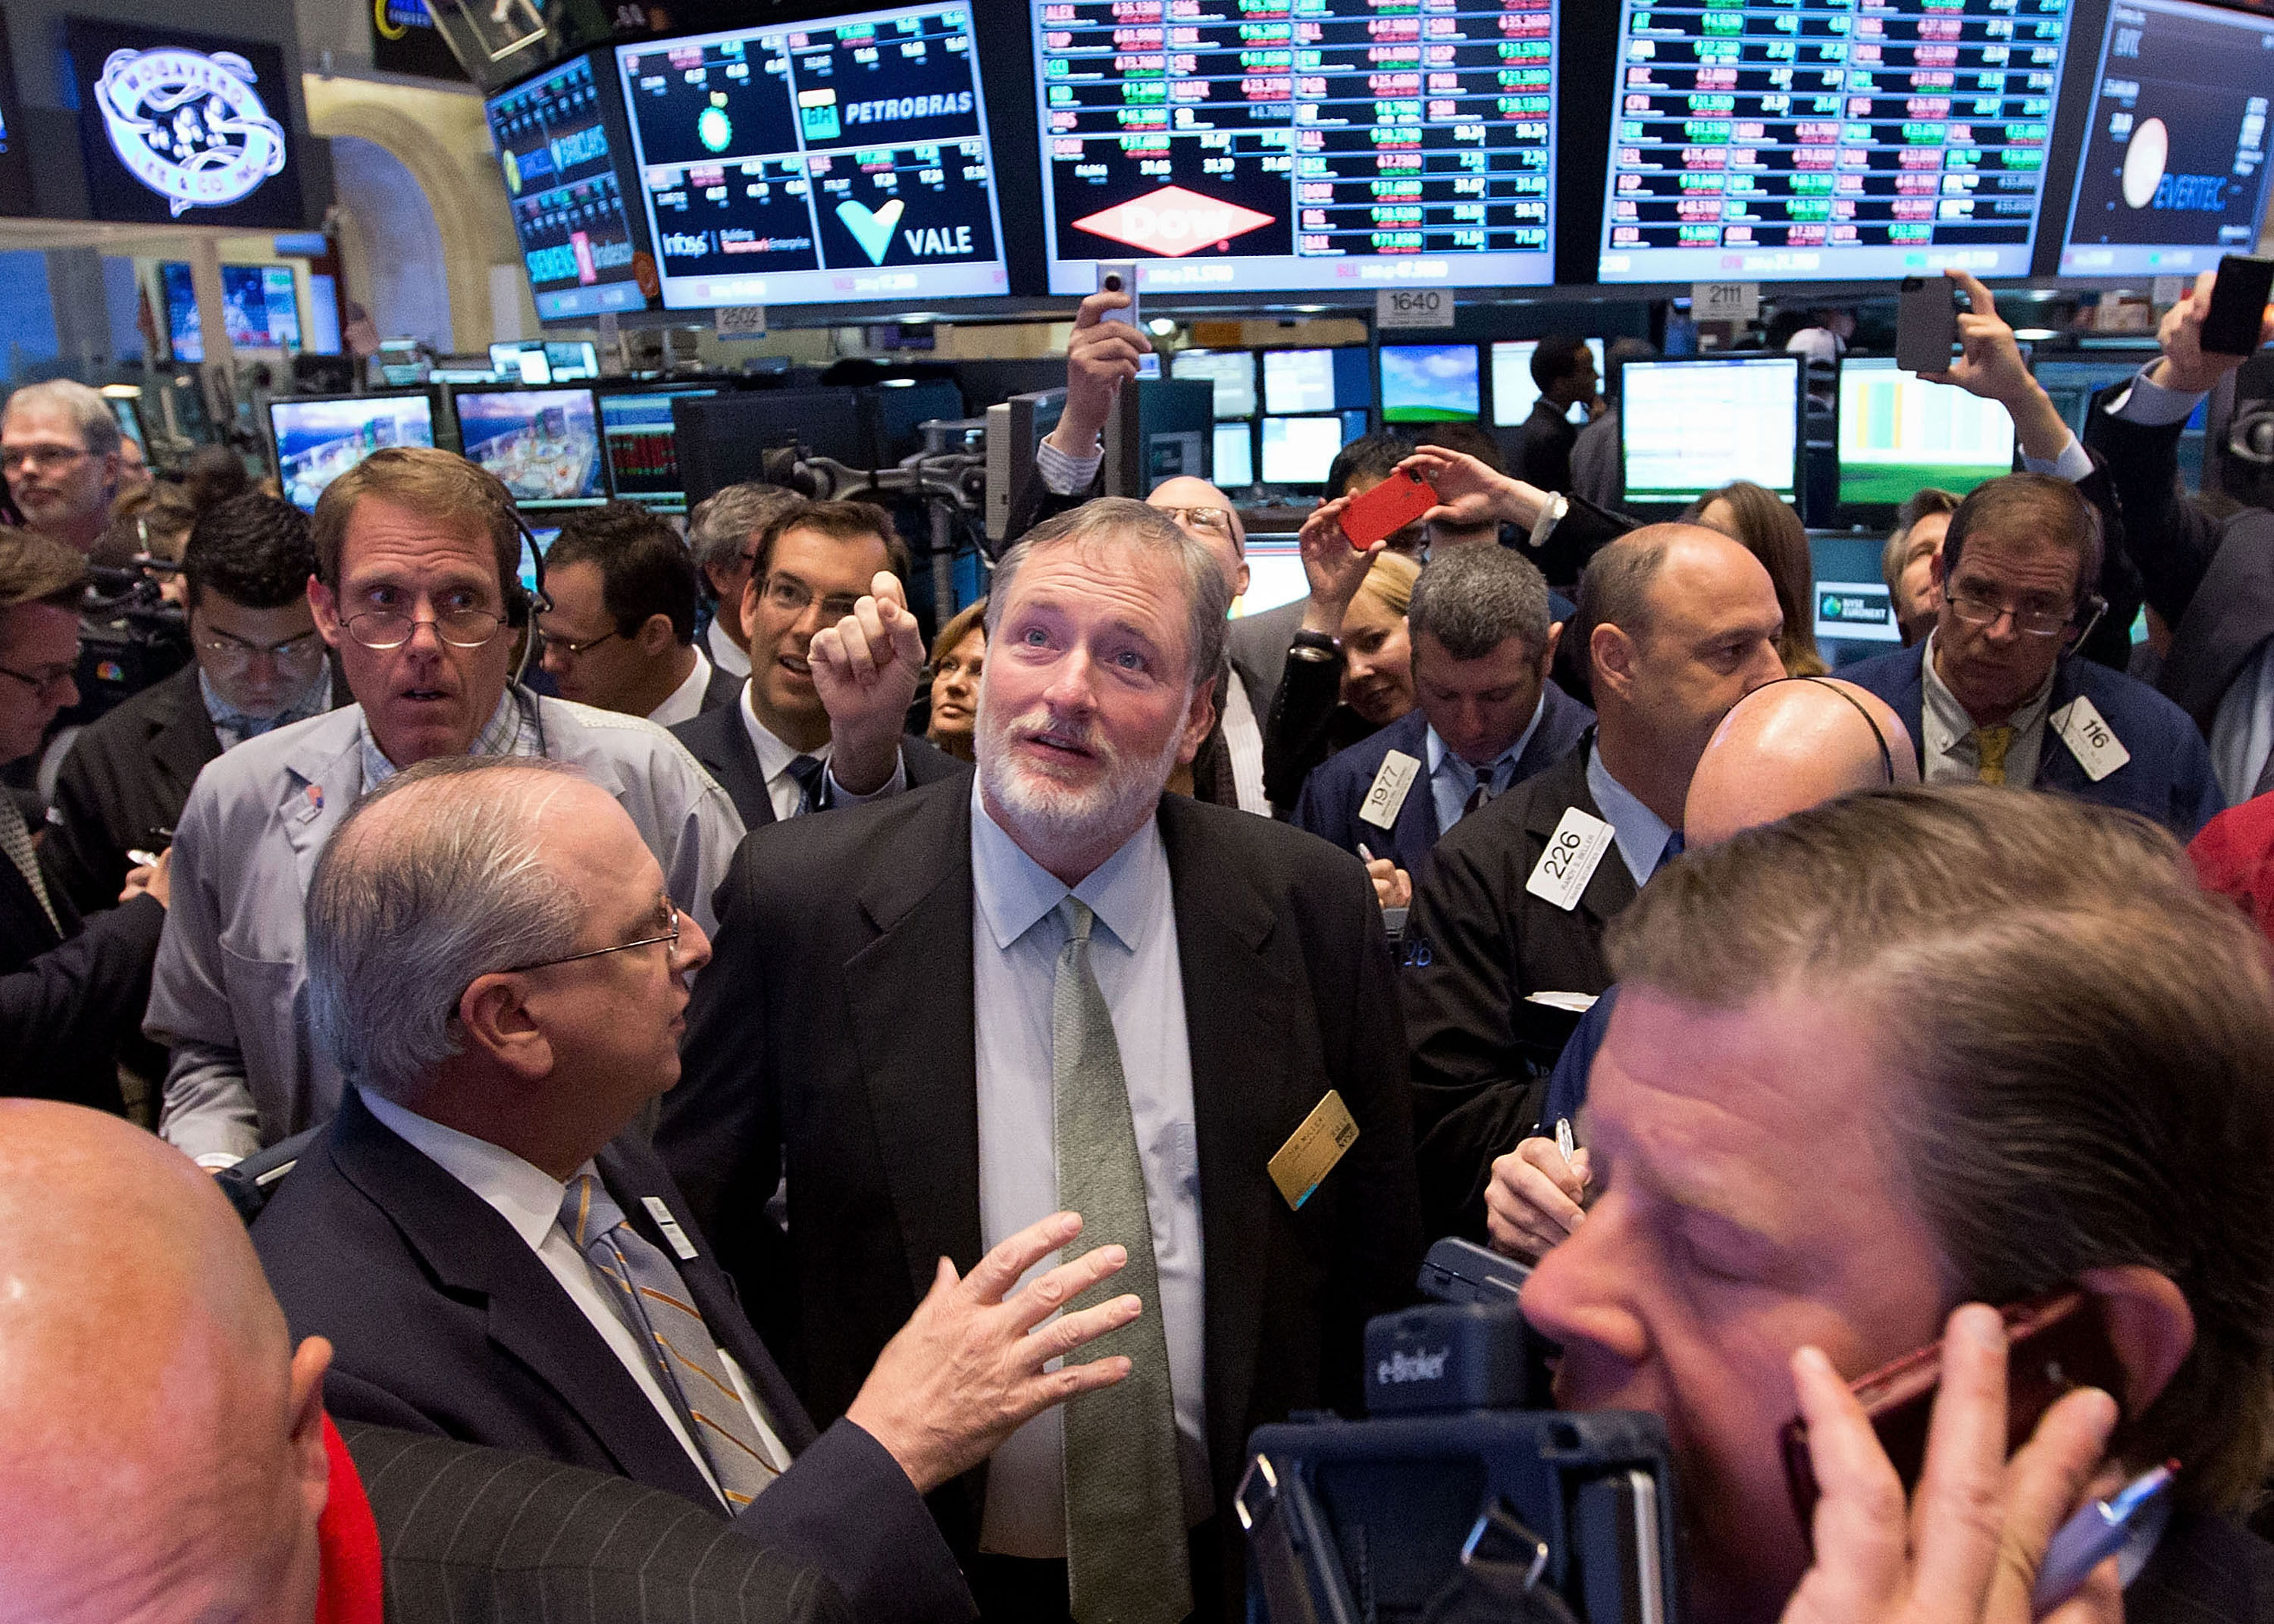 Rally Software Chief Executive Officer Tim Miller in the center of the trading crowd as the company's stock opens on the NYSE. (Source: NYSE Euronext Photo)